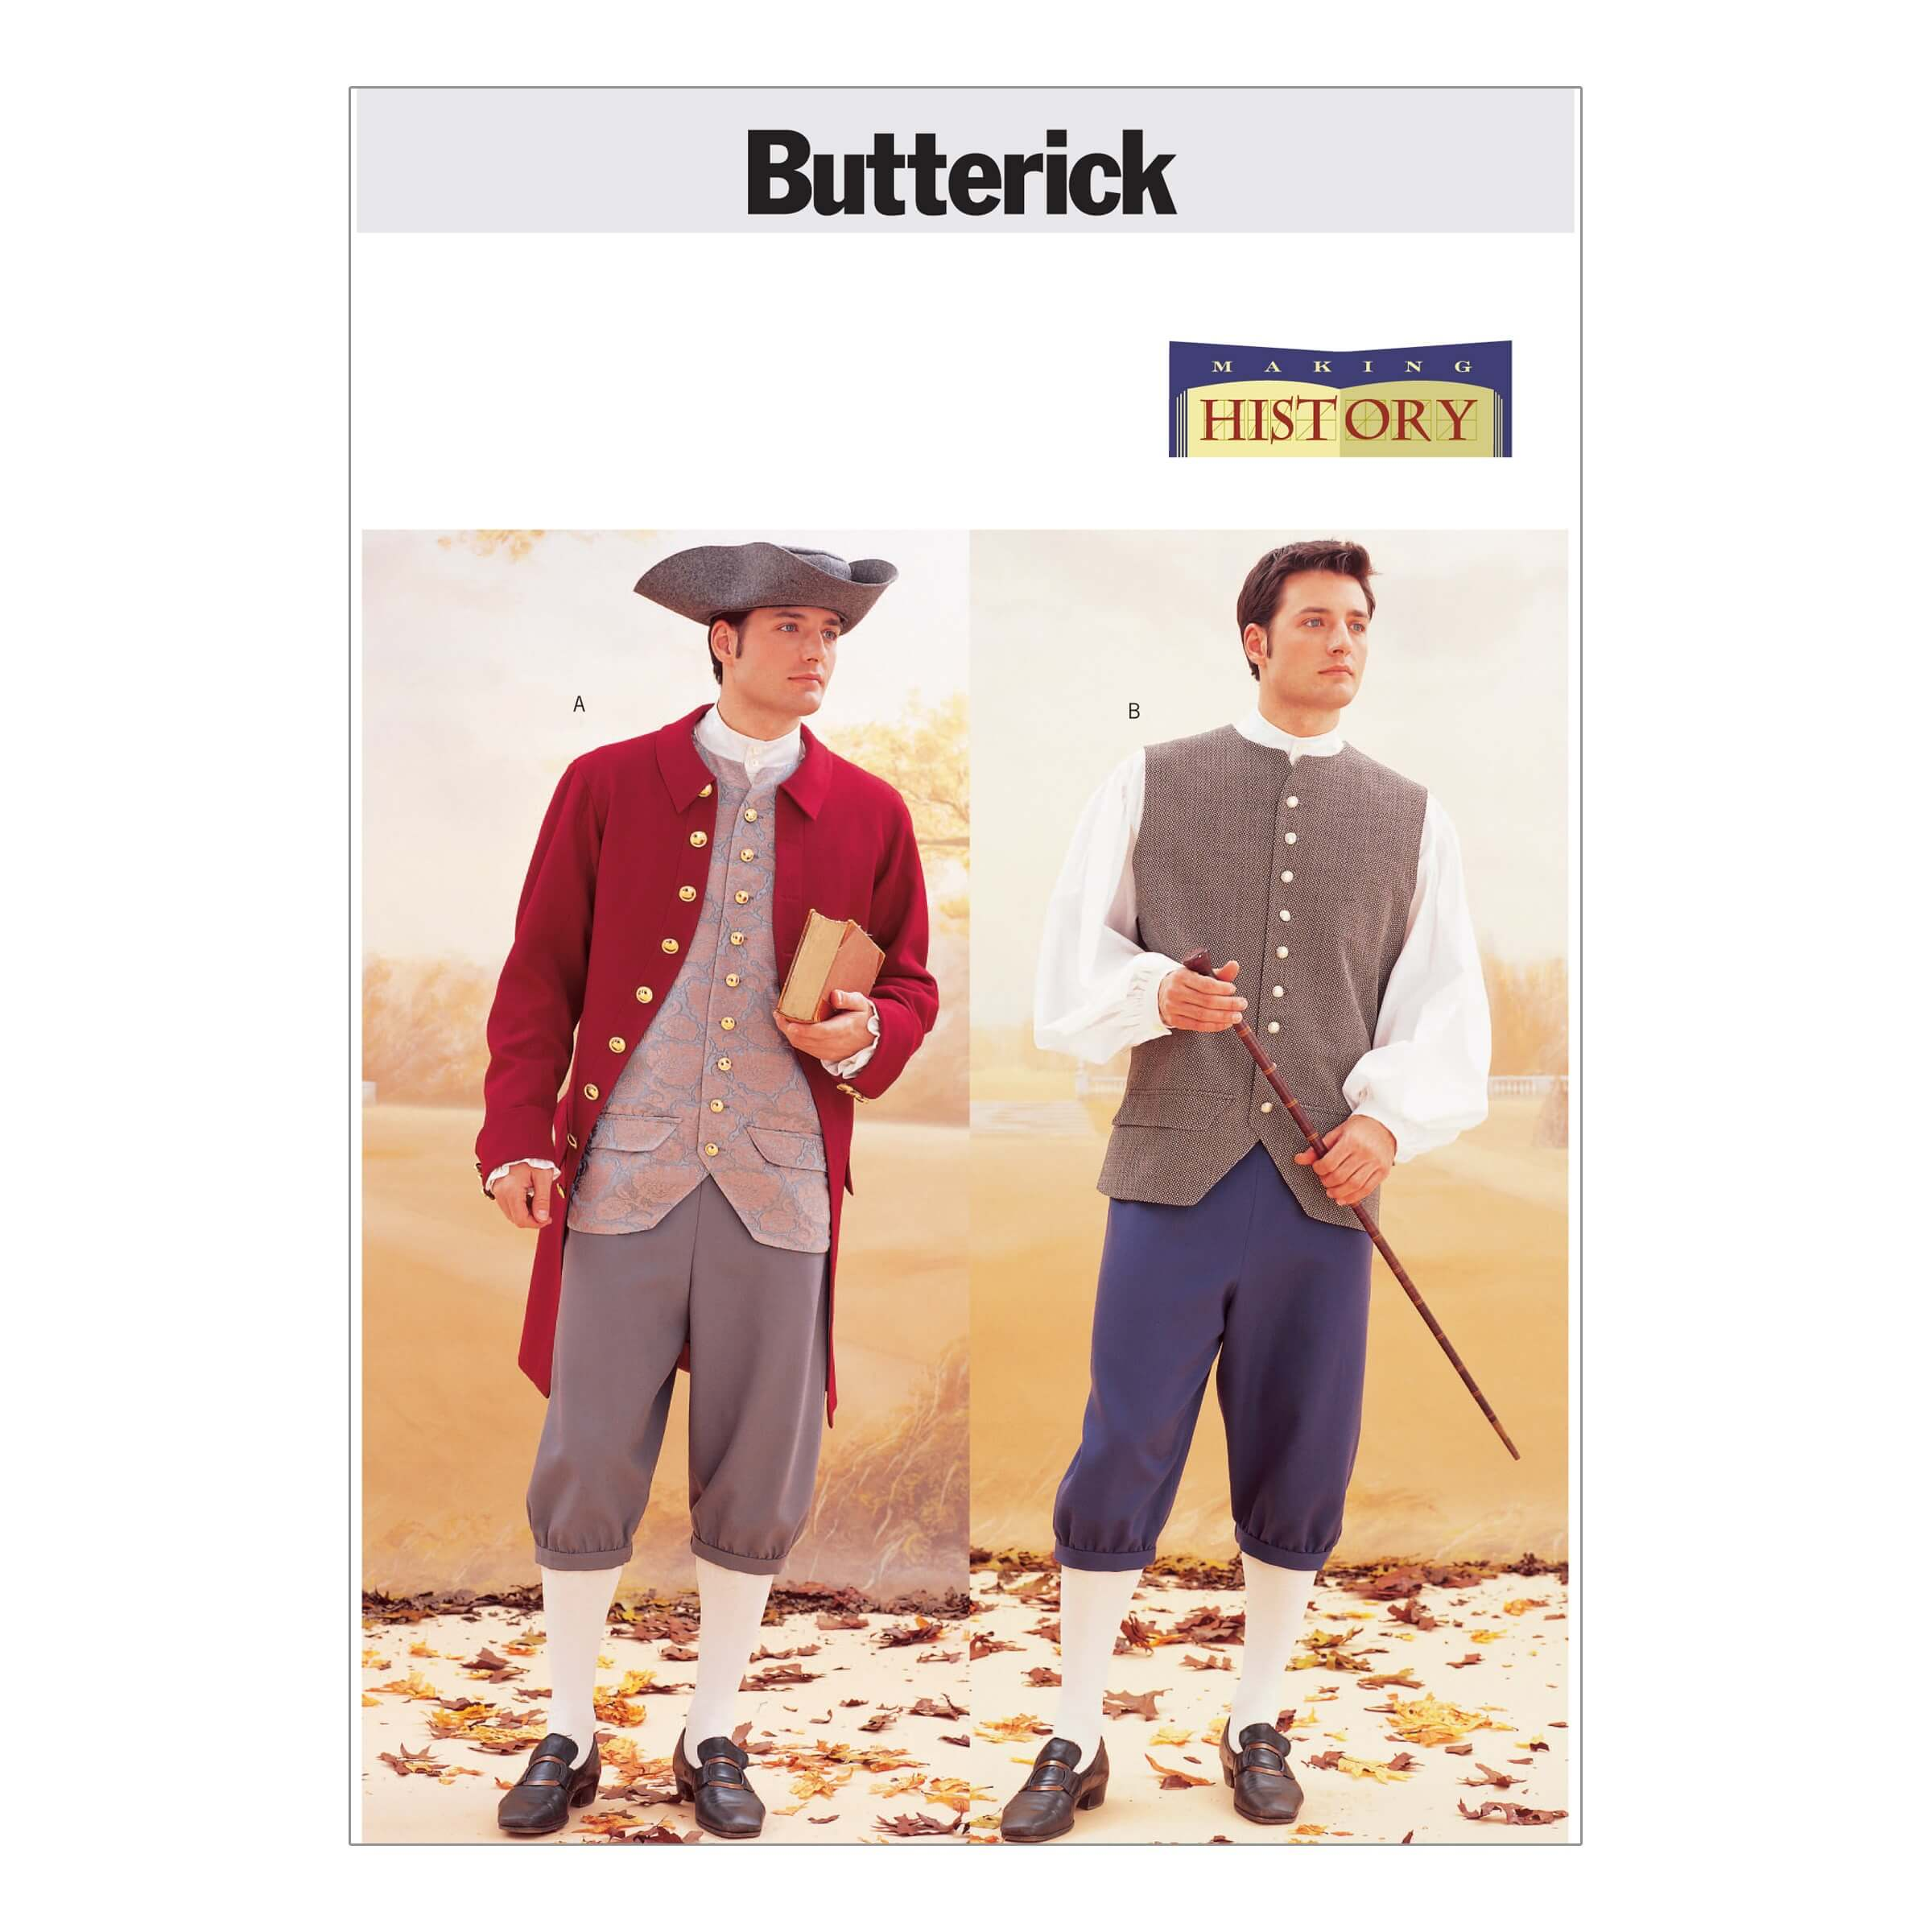 Butterick Sewing Pattern 3072 Historical Costume Nautical Sailor